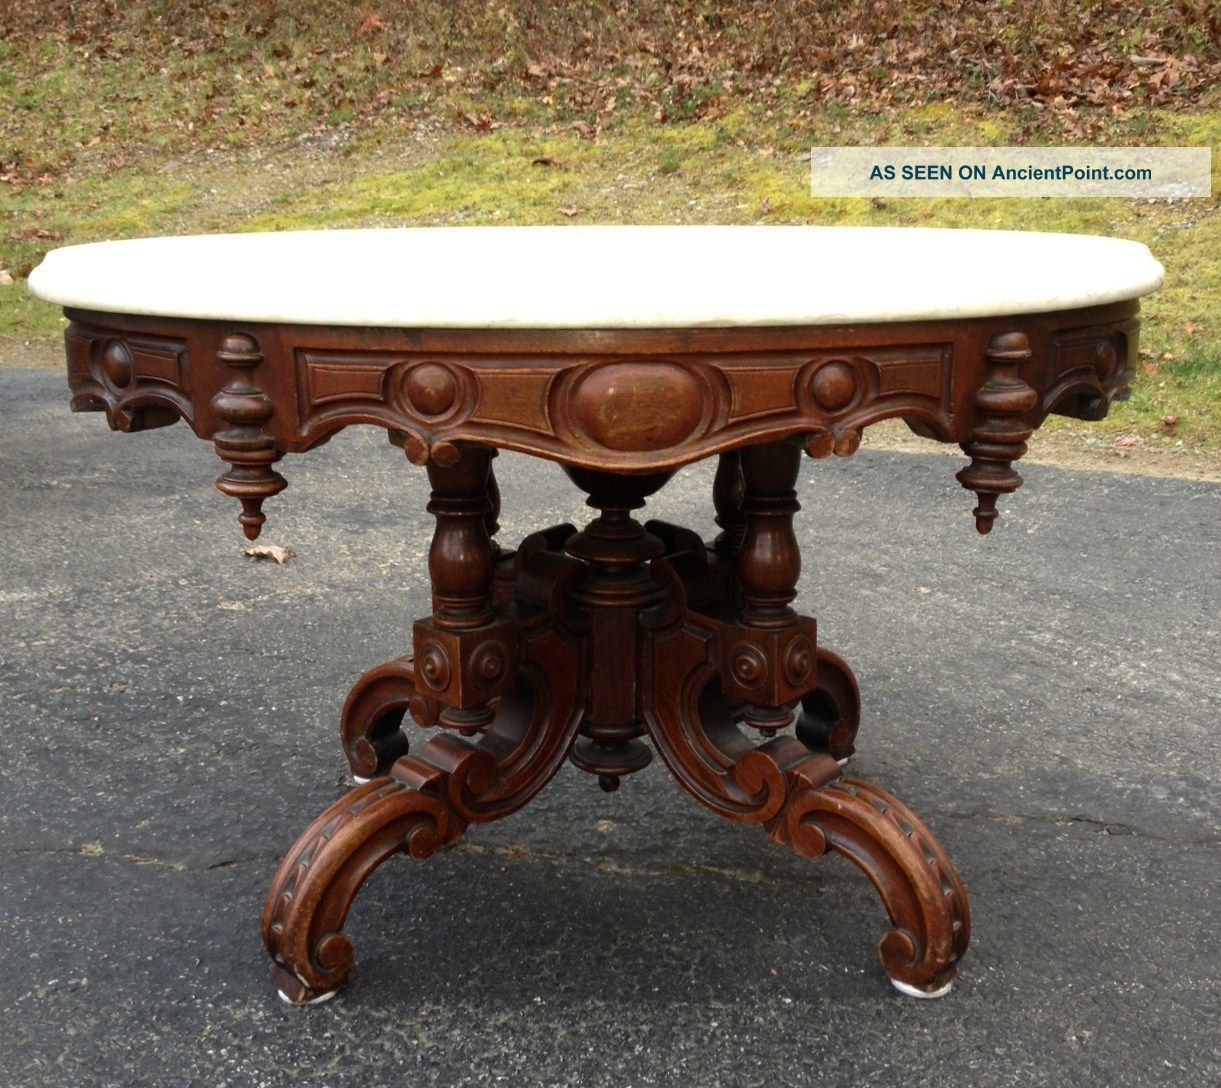 Marvelous Oval Marble Top Coffee Table, Attr. Thomas Brooks 1800 1899